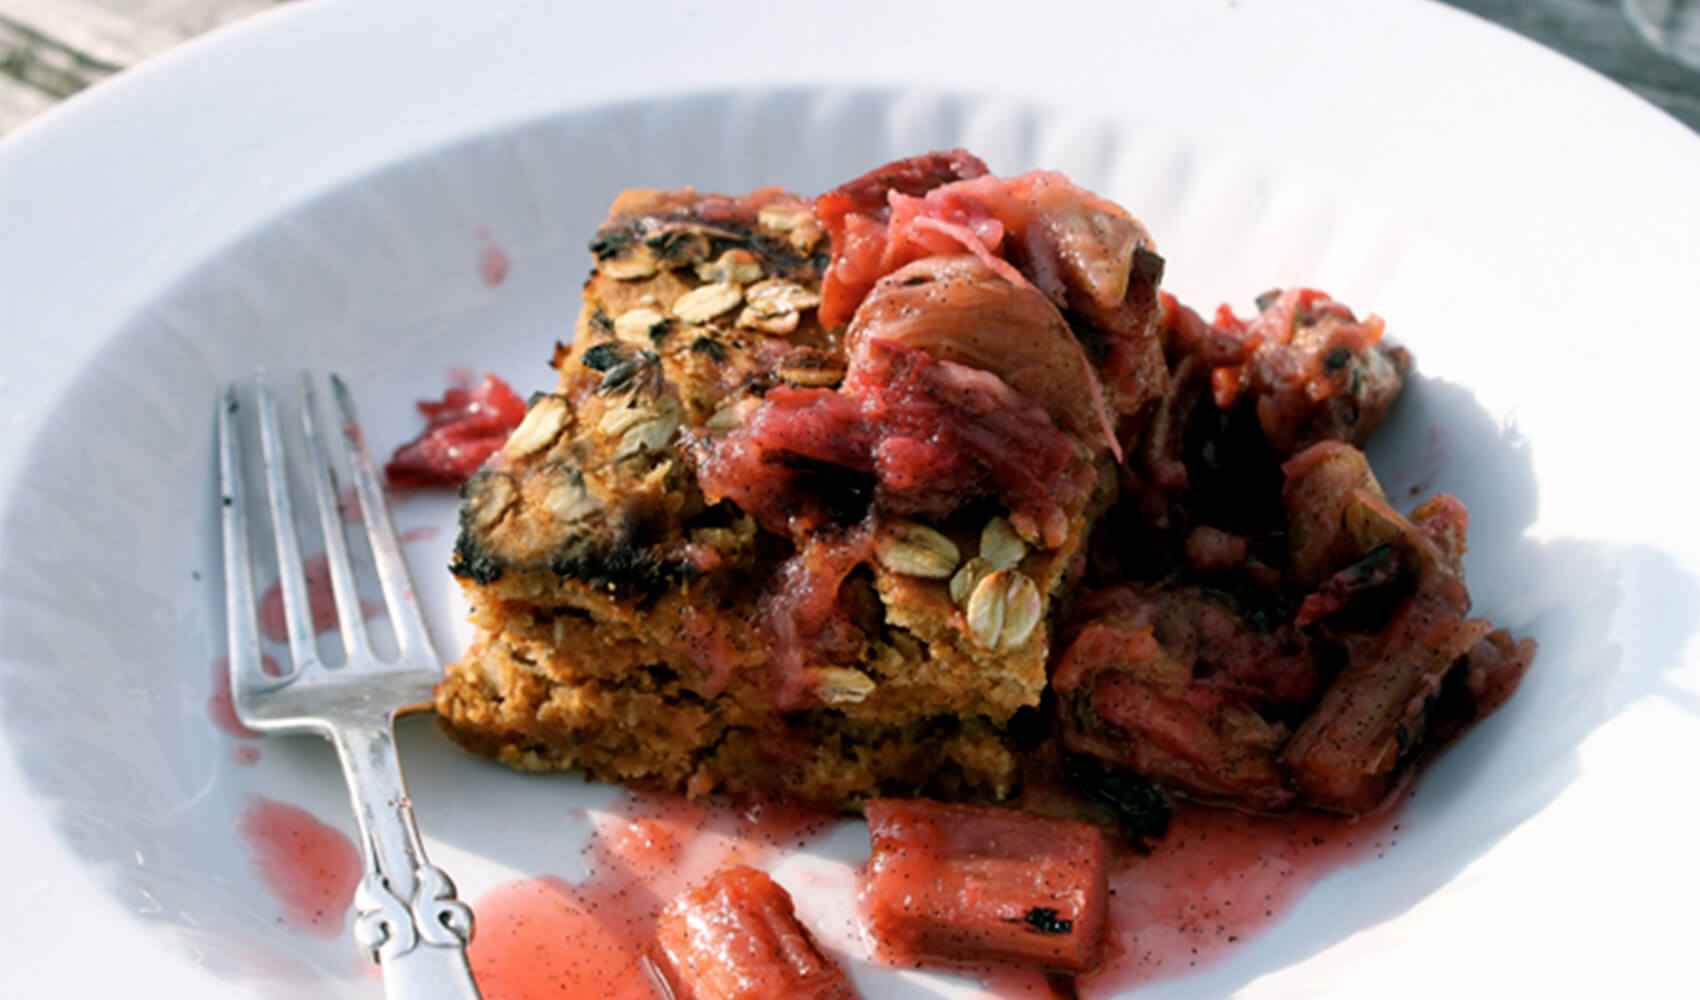 Simple Strawberry Cake with Grilled Rhubarb Vanilla Sauce